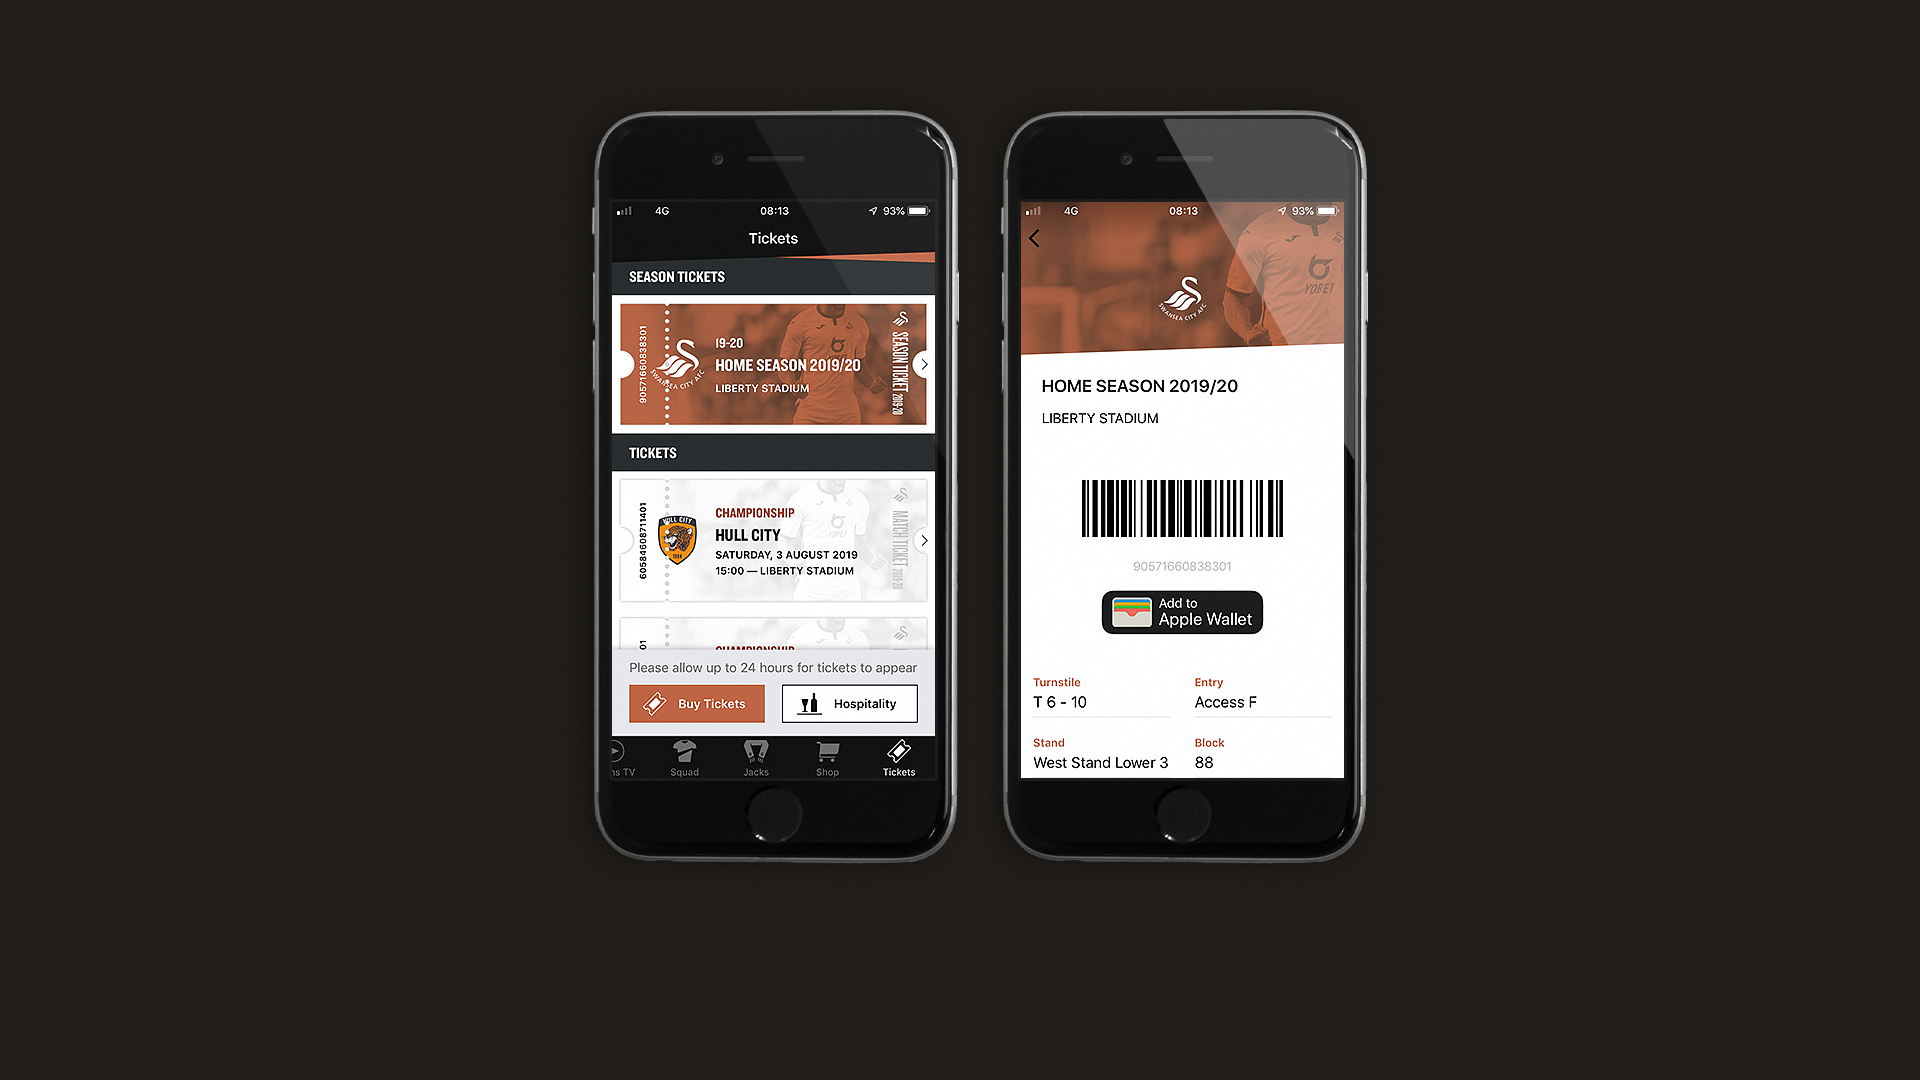 In-app ticketing functionality live for first Championship